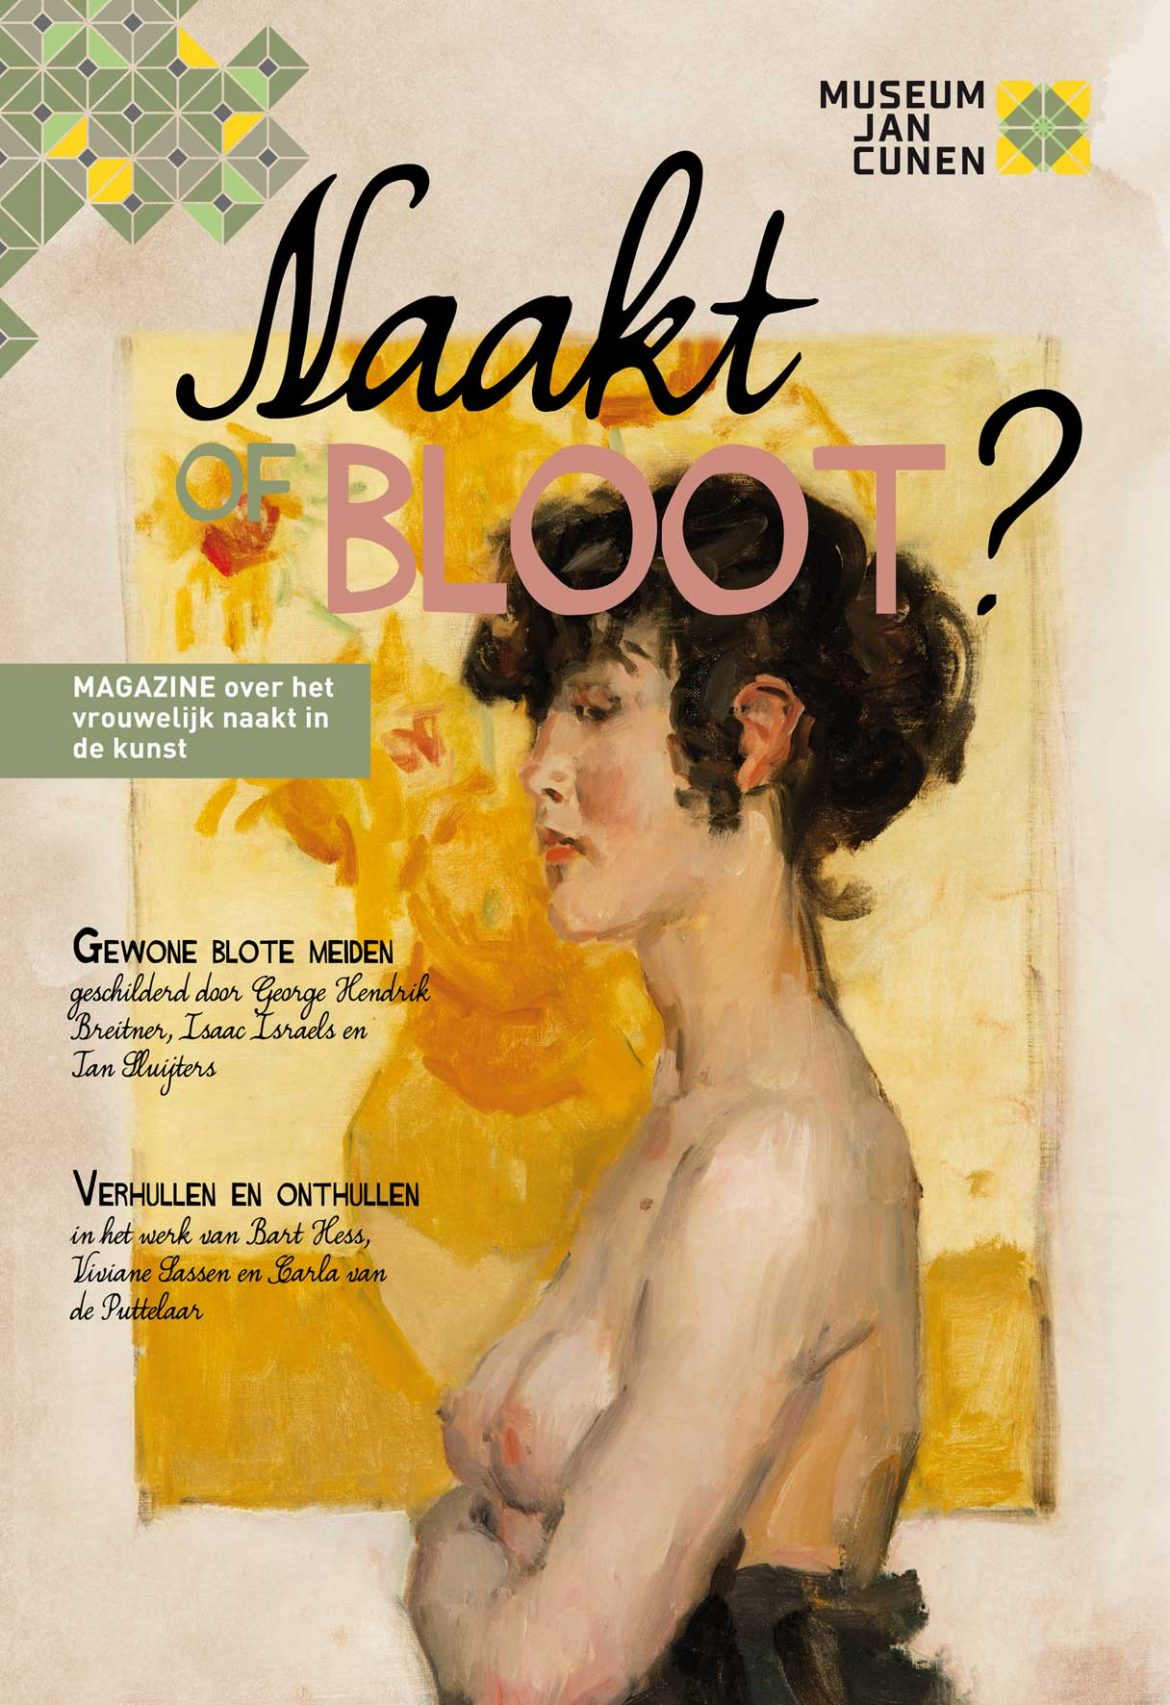 Naakt of bloot? Museum Jan Cunen